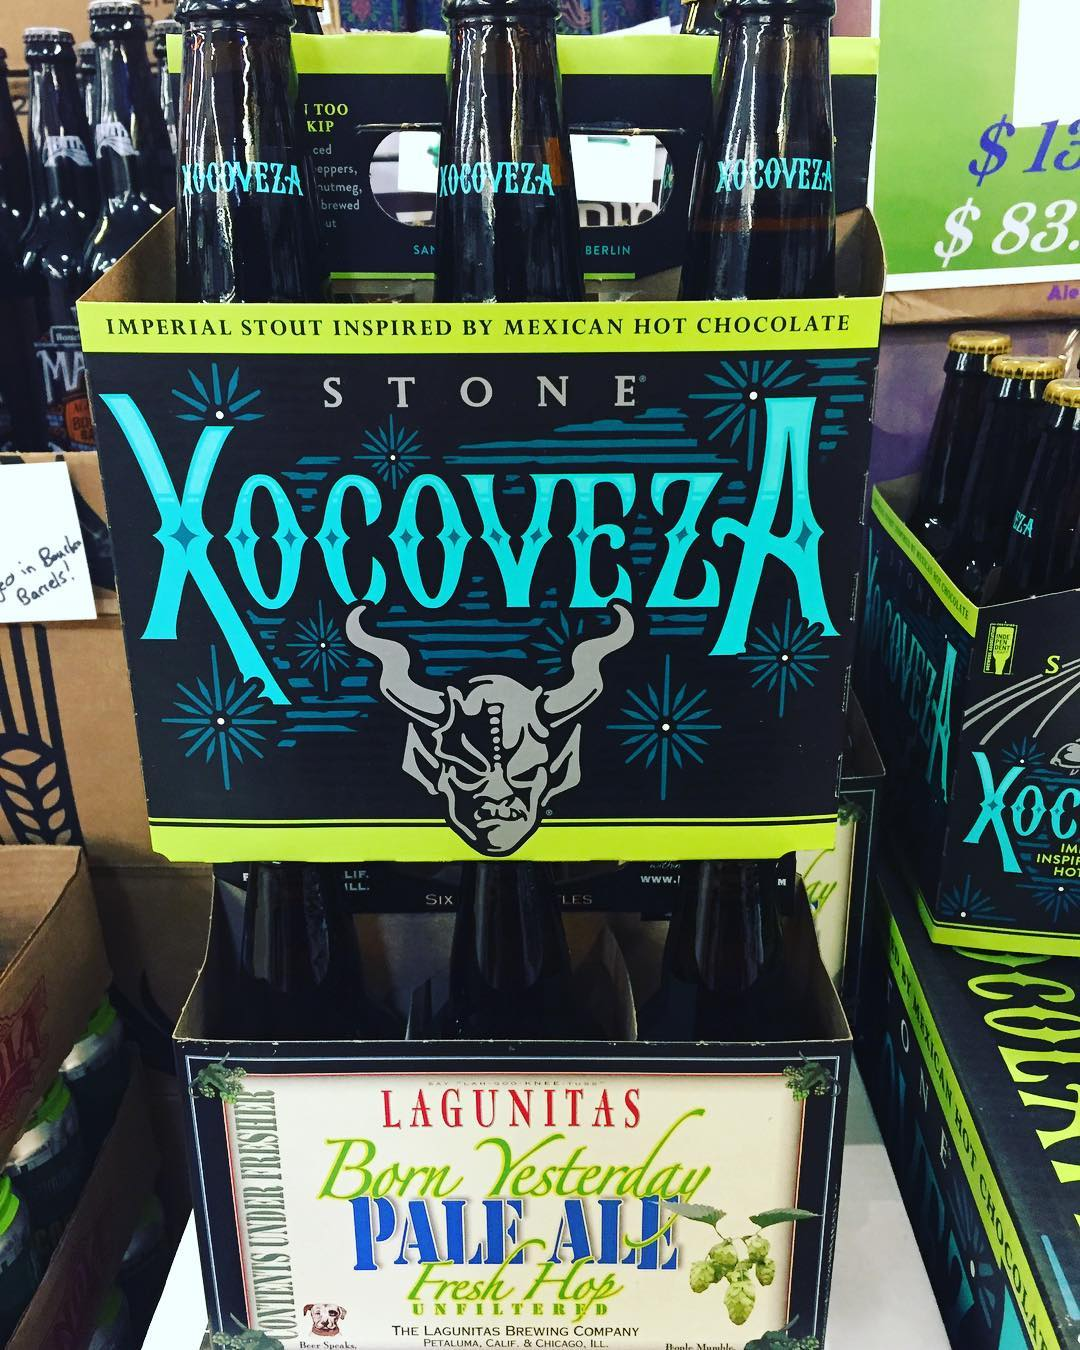 @stonebrewing Xocoveza and @lagunitasbeer Born Yesterday Pale Ale are both now in stock at our…